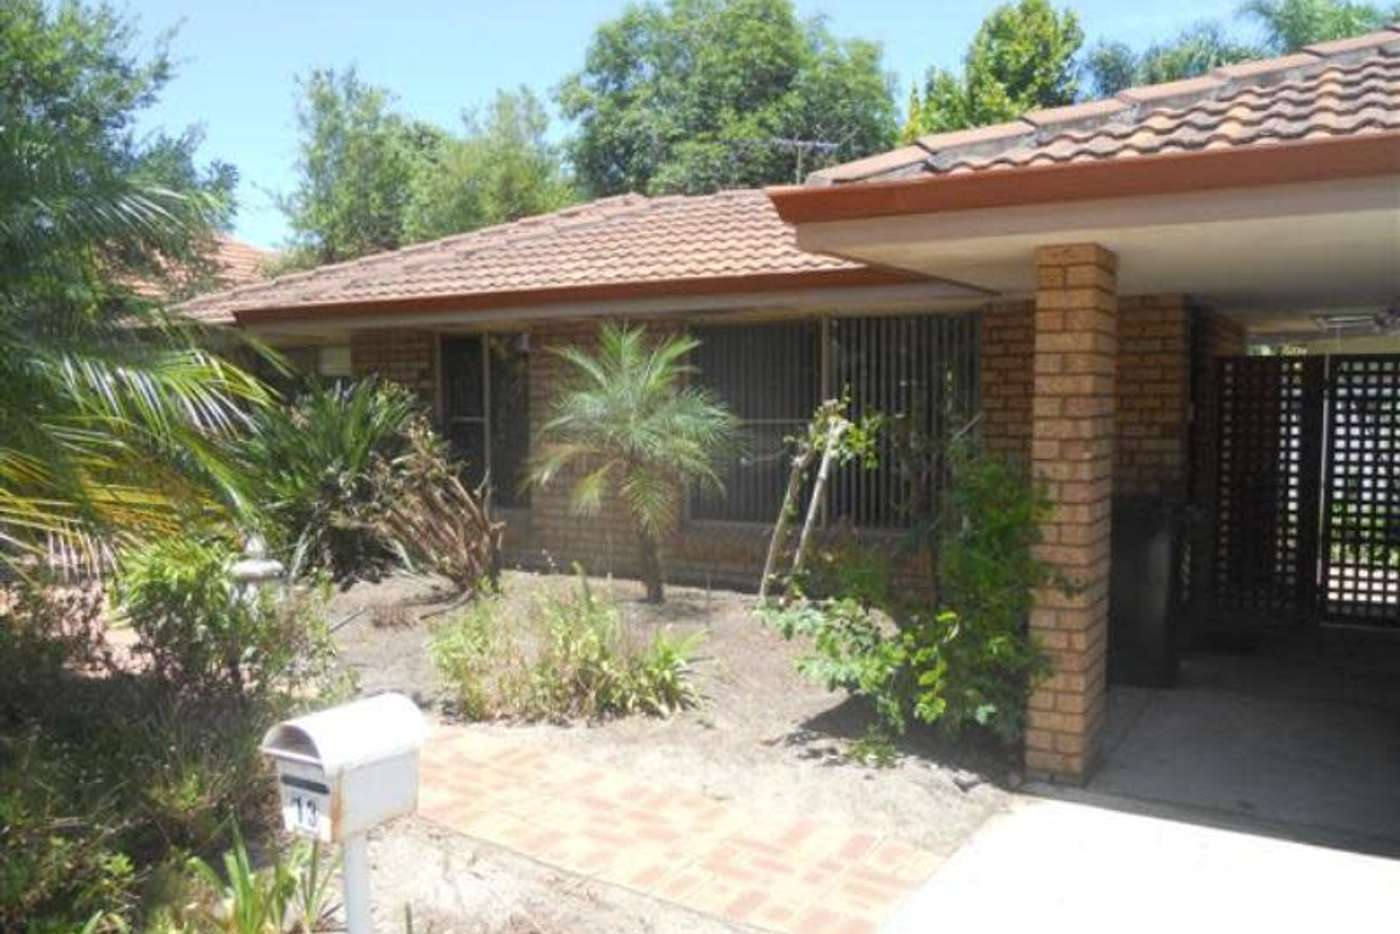 Main view of Homely house listing, 13 Custance Street, Lathlain WA 6100